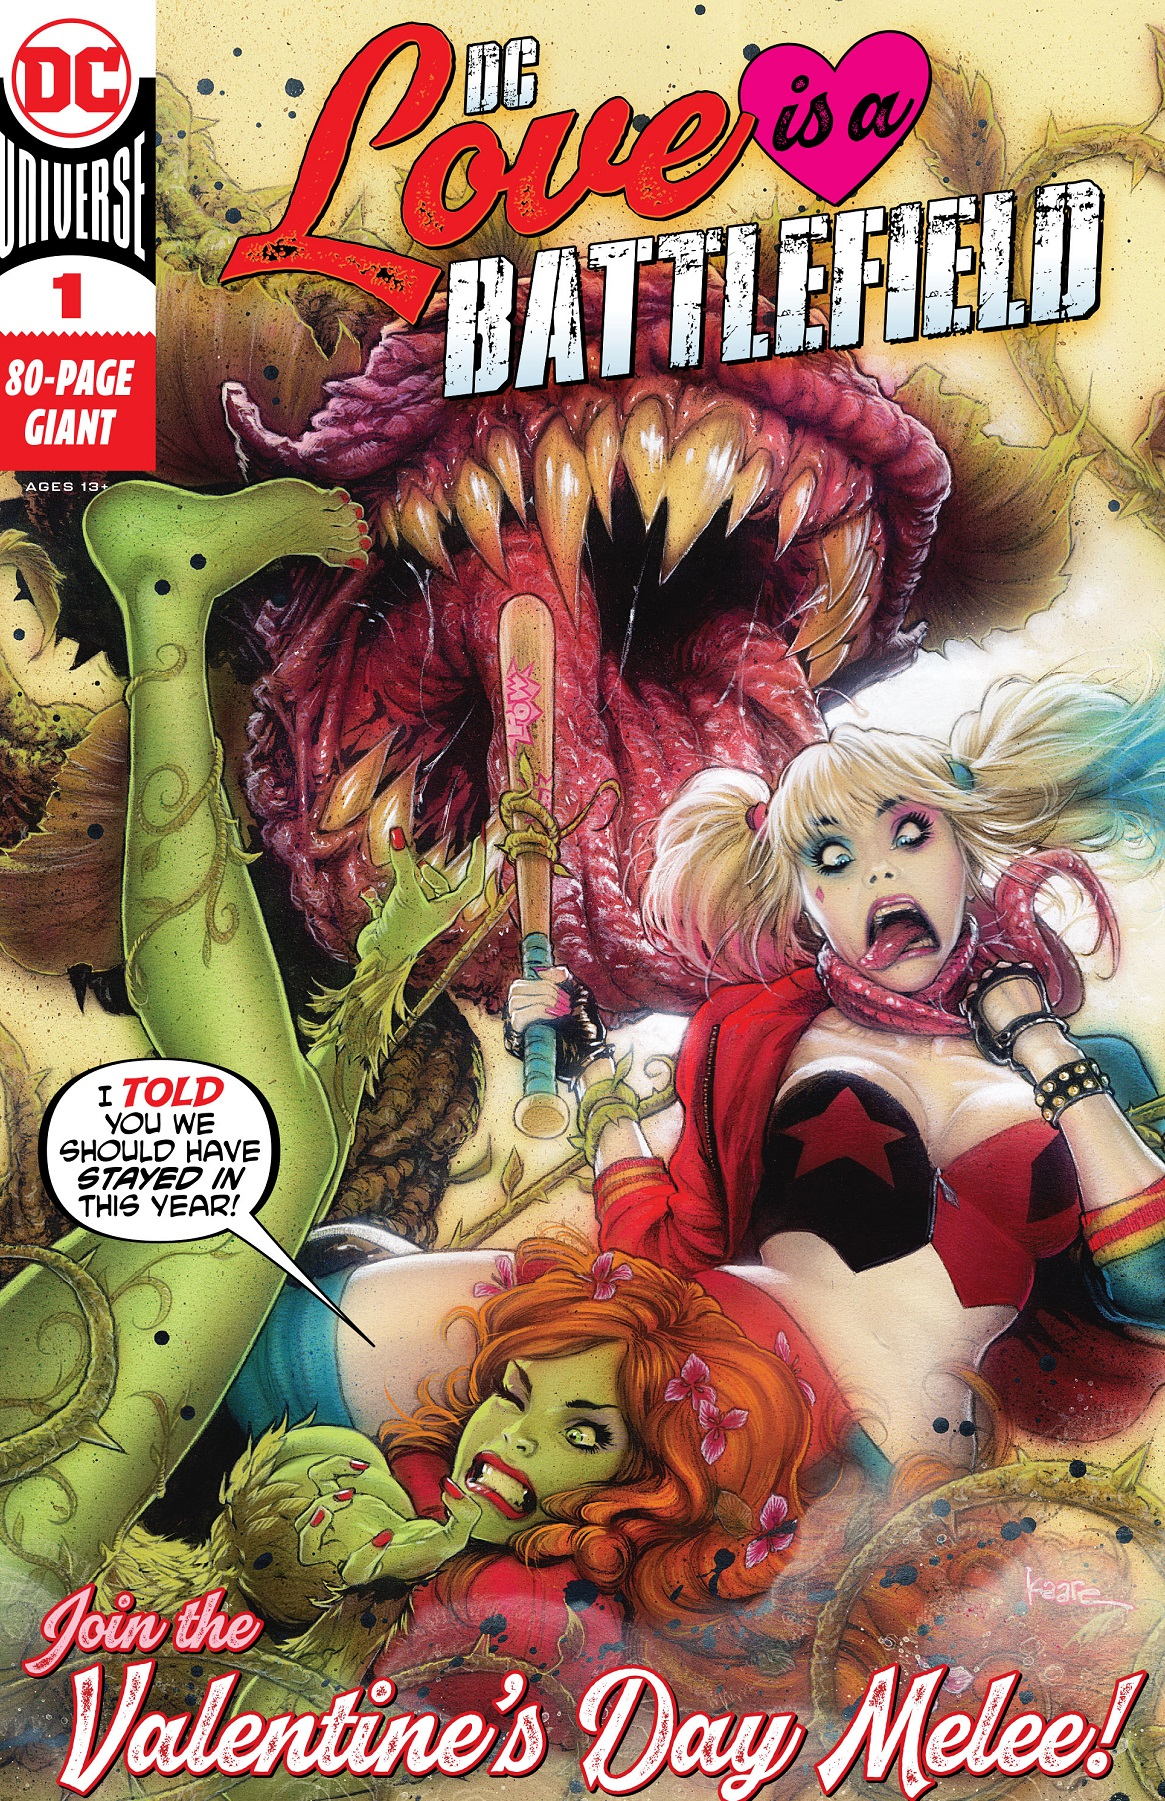 Love is a Battlefield issue 1 review